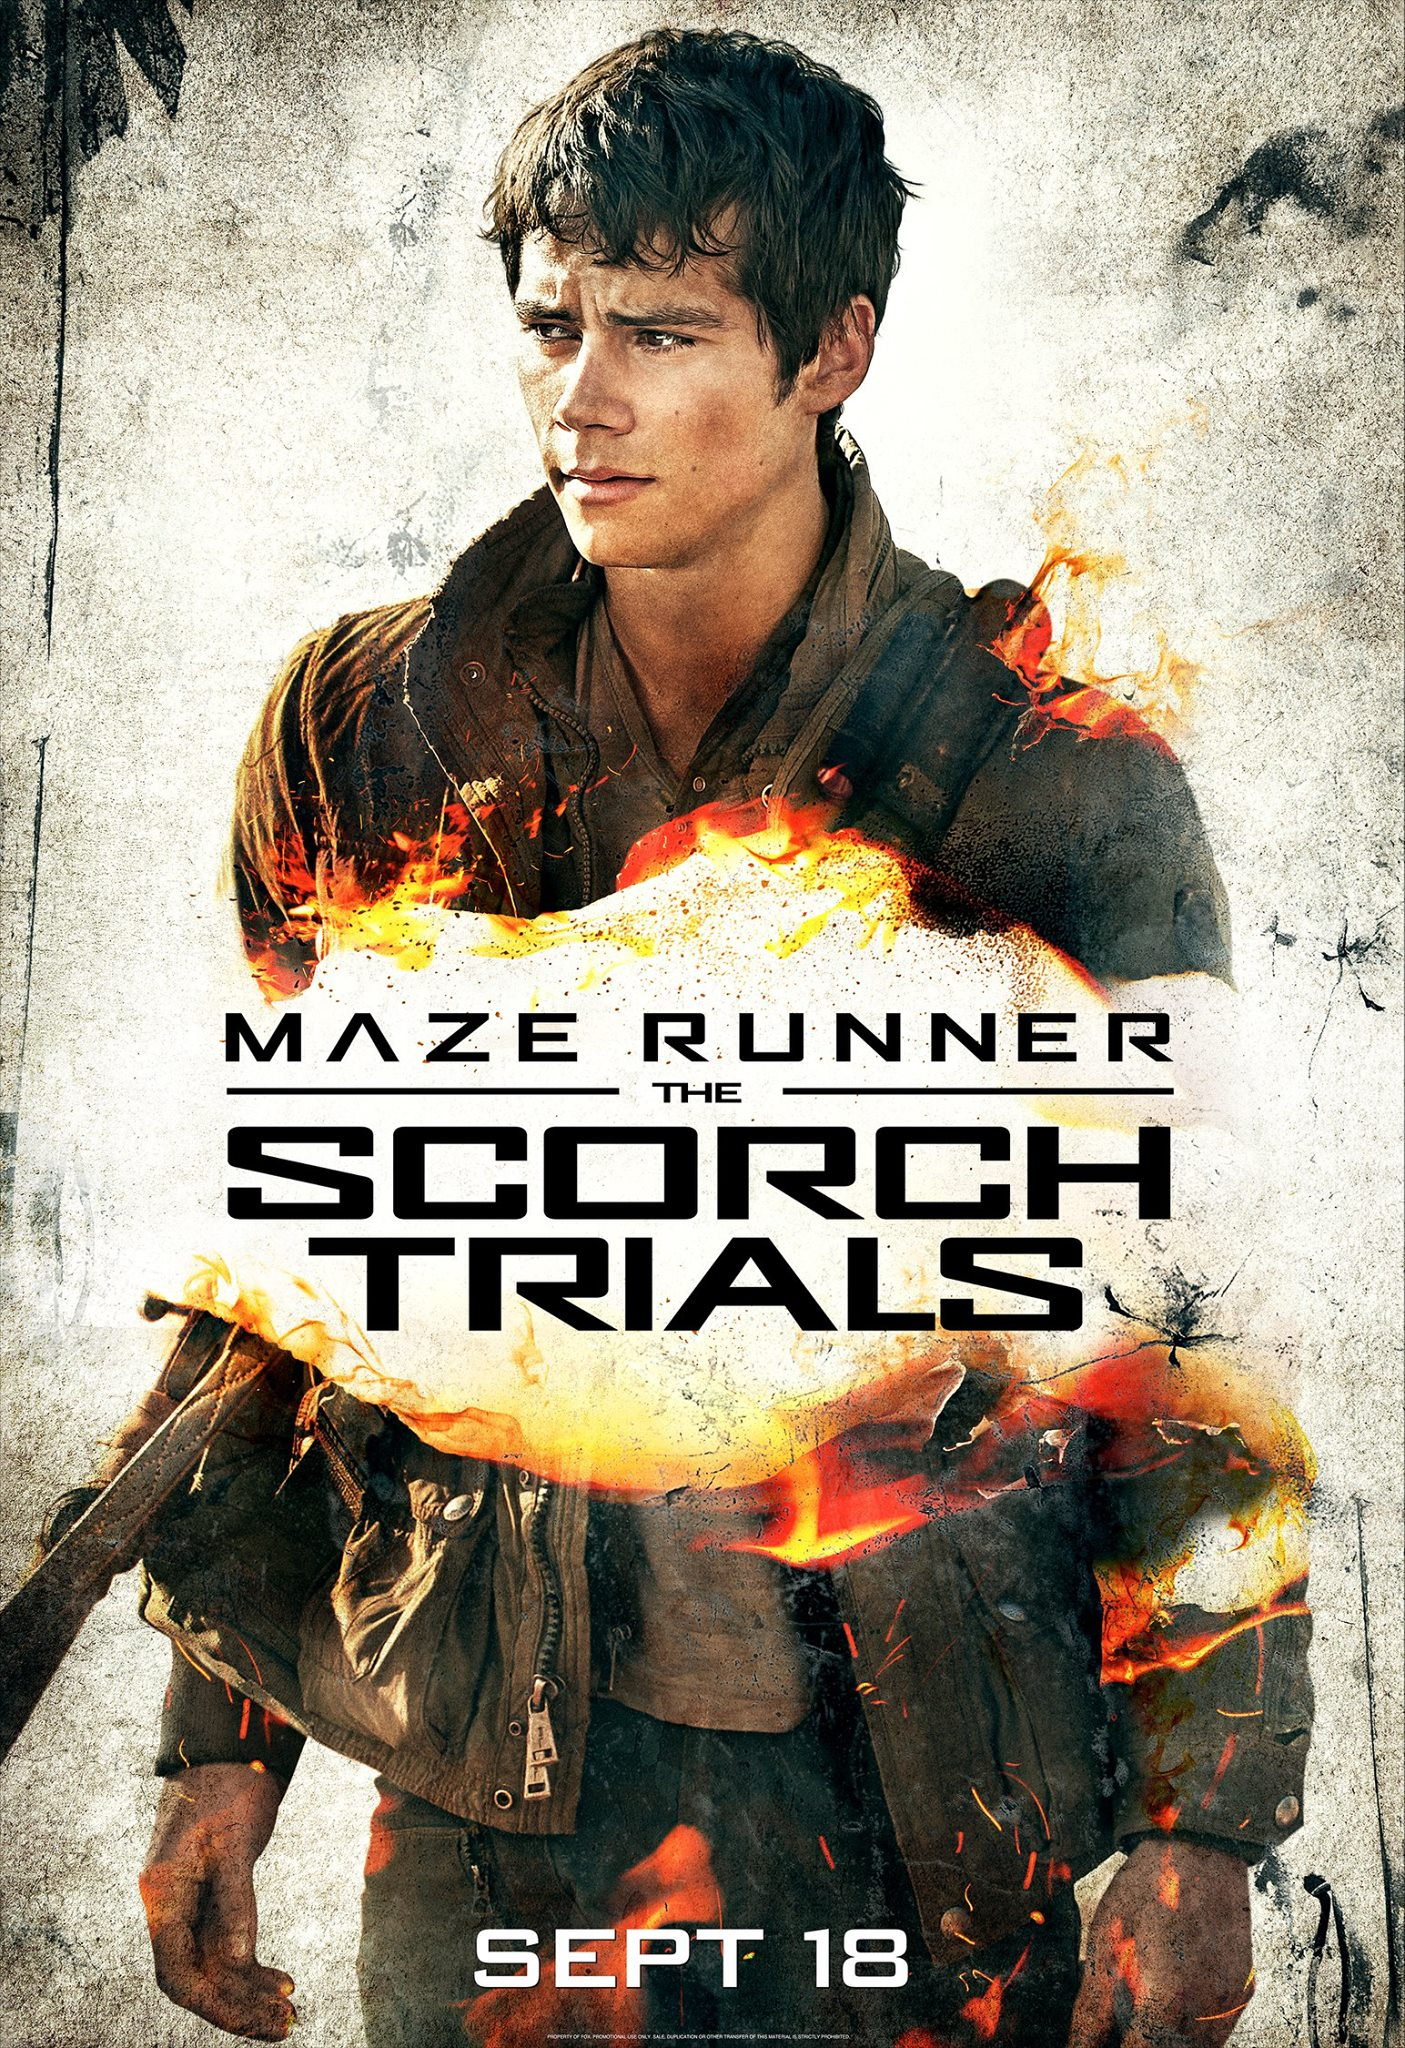 Maze Runner: The Scorch Trials Dylan O'Brien